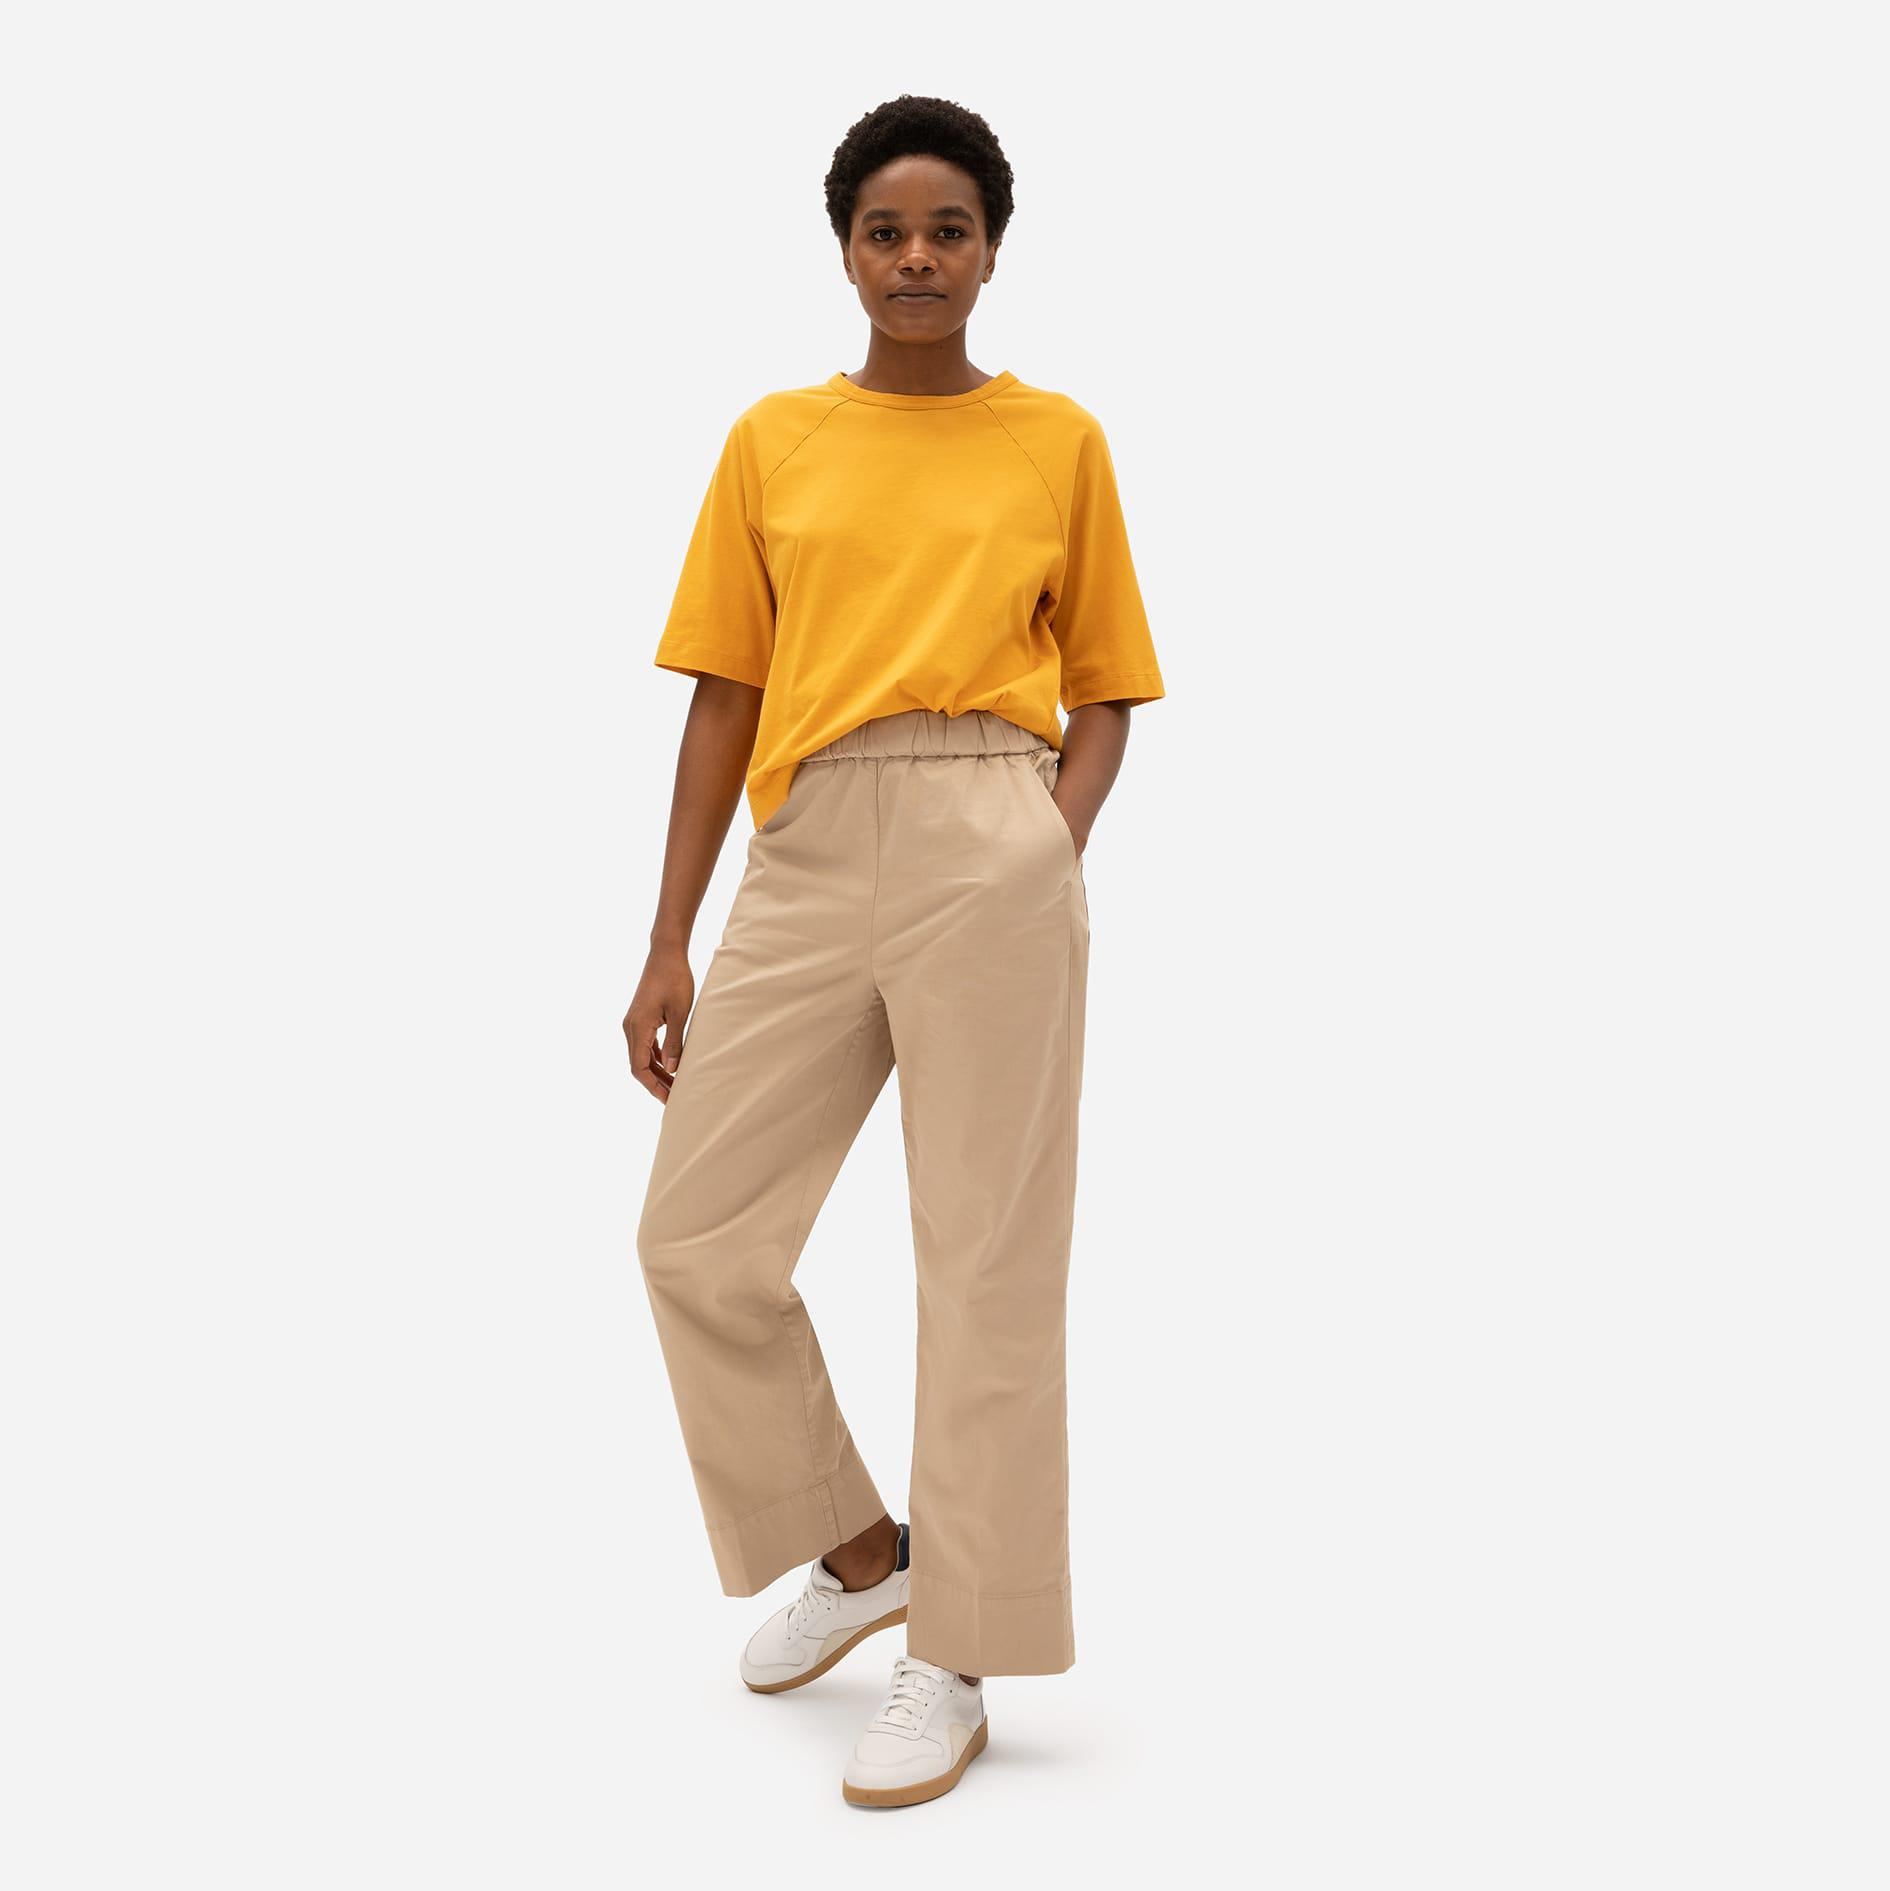 The Easy Pant